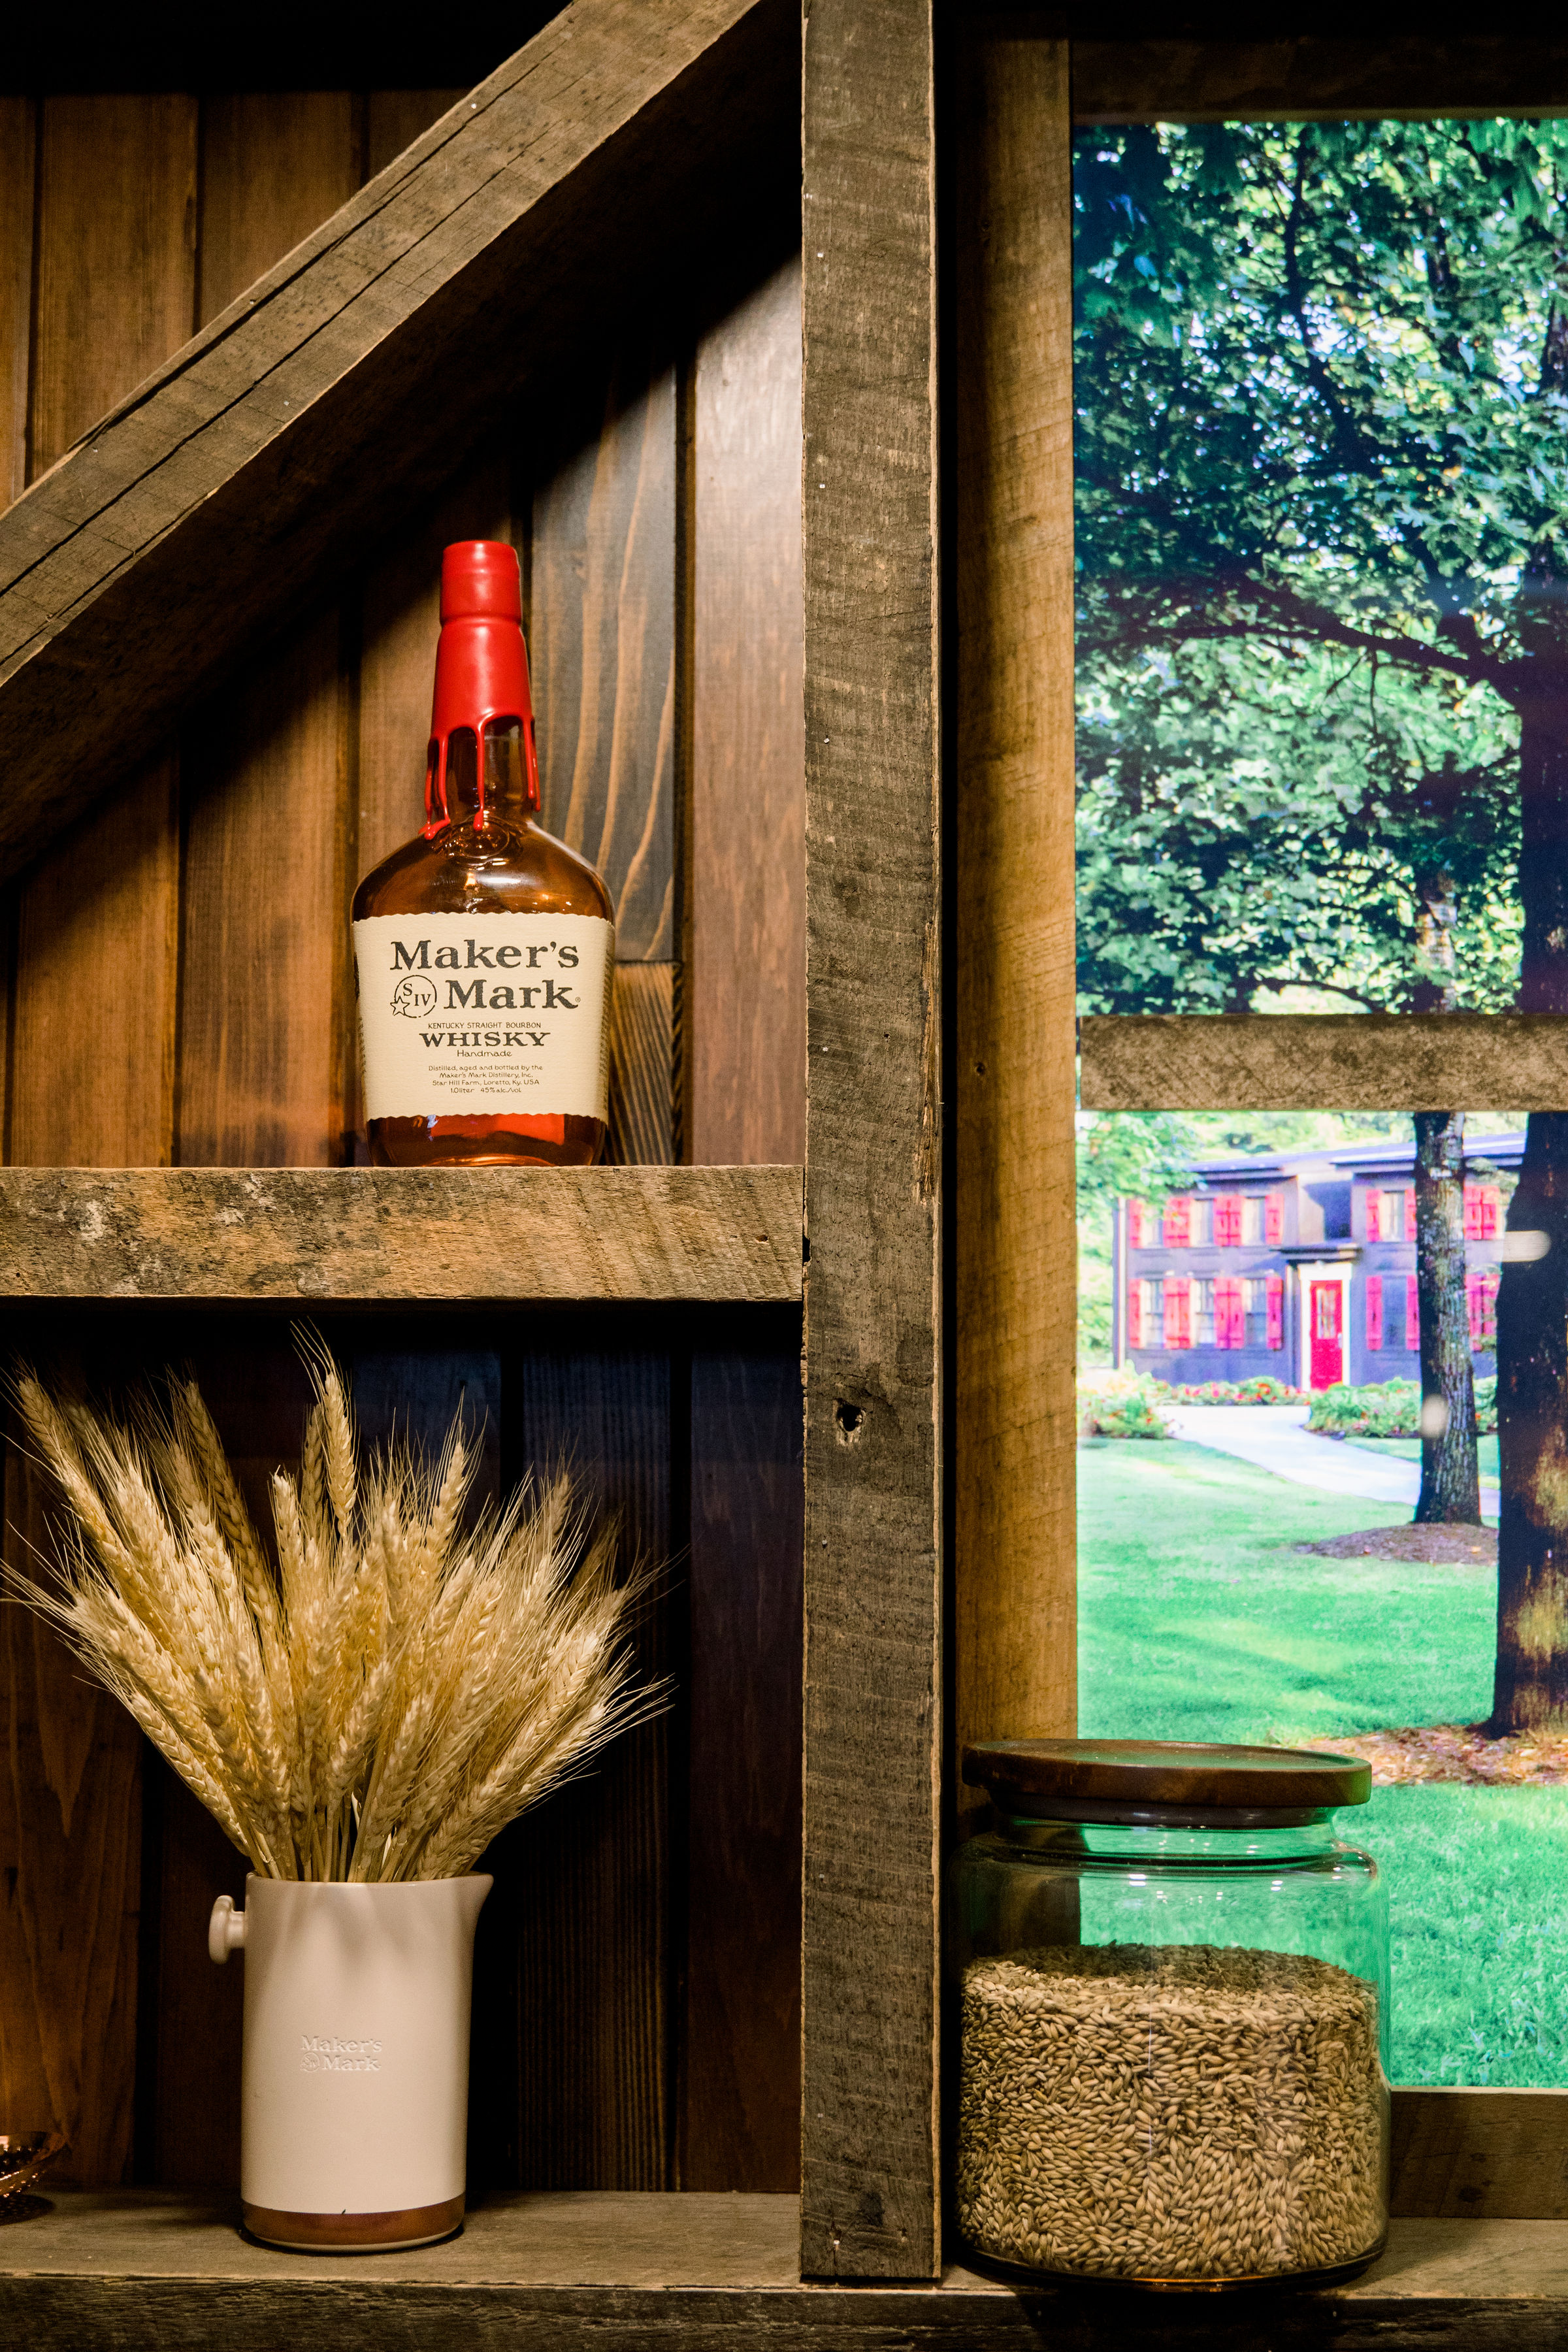 Makers Mark bottle at Makers Wanted Booth at Keeneland during Derby Day. Photo by The Malicotes